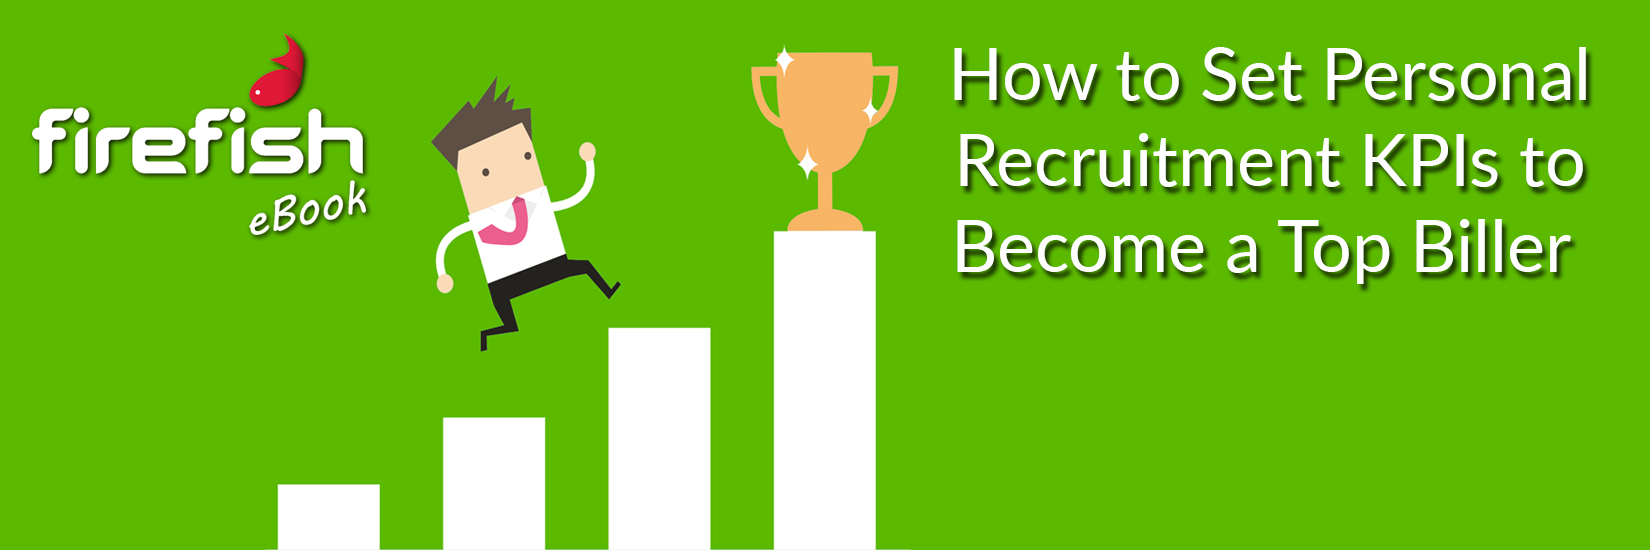 set-recruitment-KPIs-to become-a-top-biller-ebook-cta.png